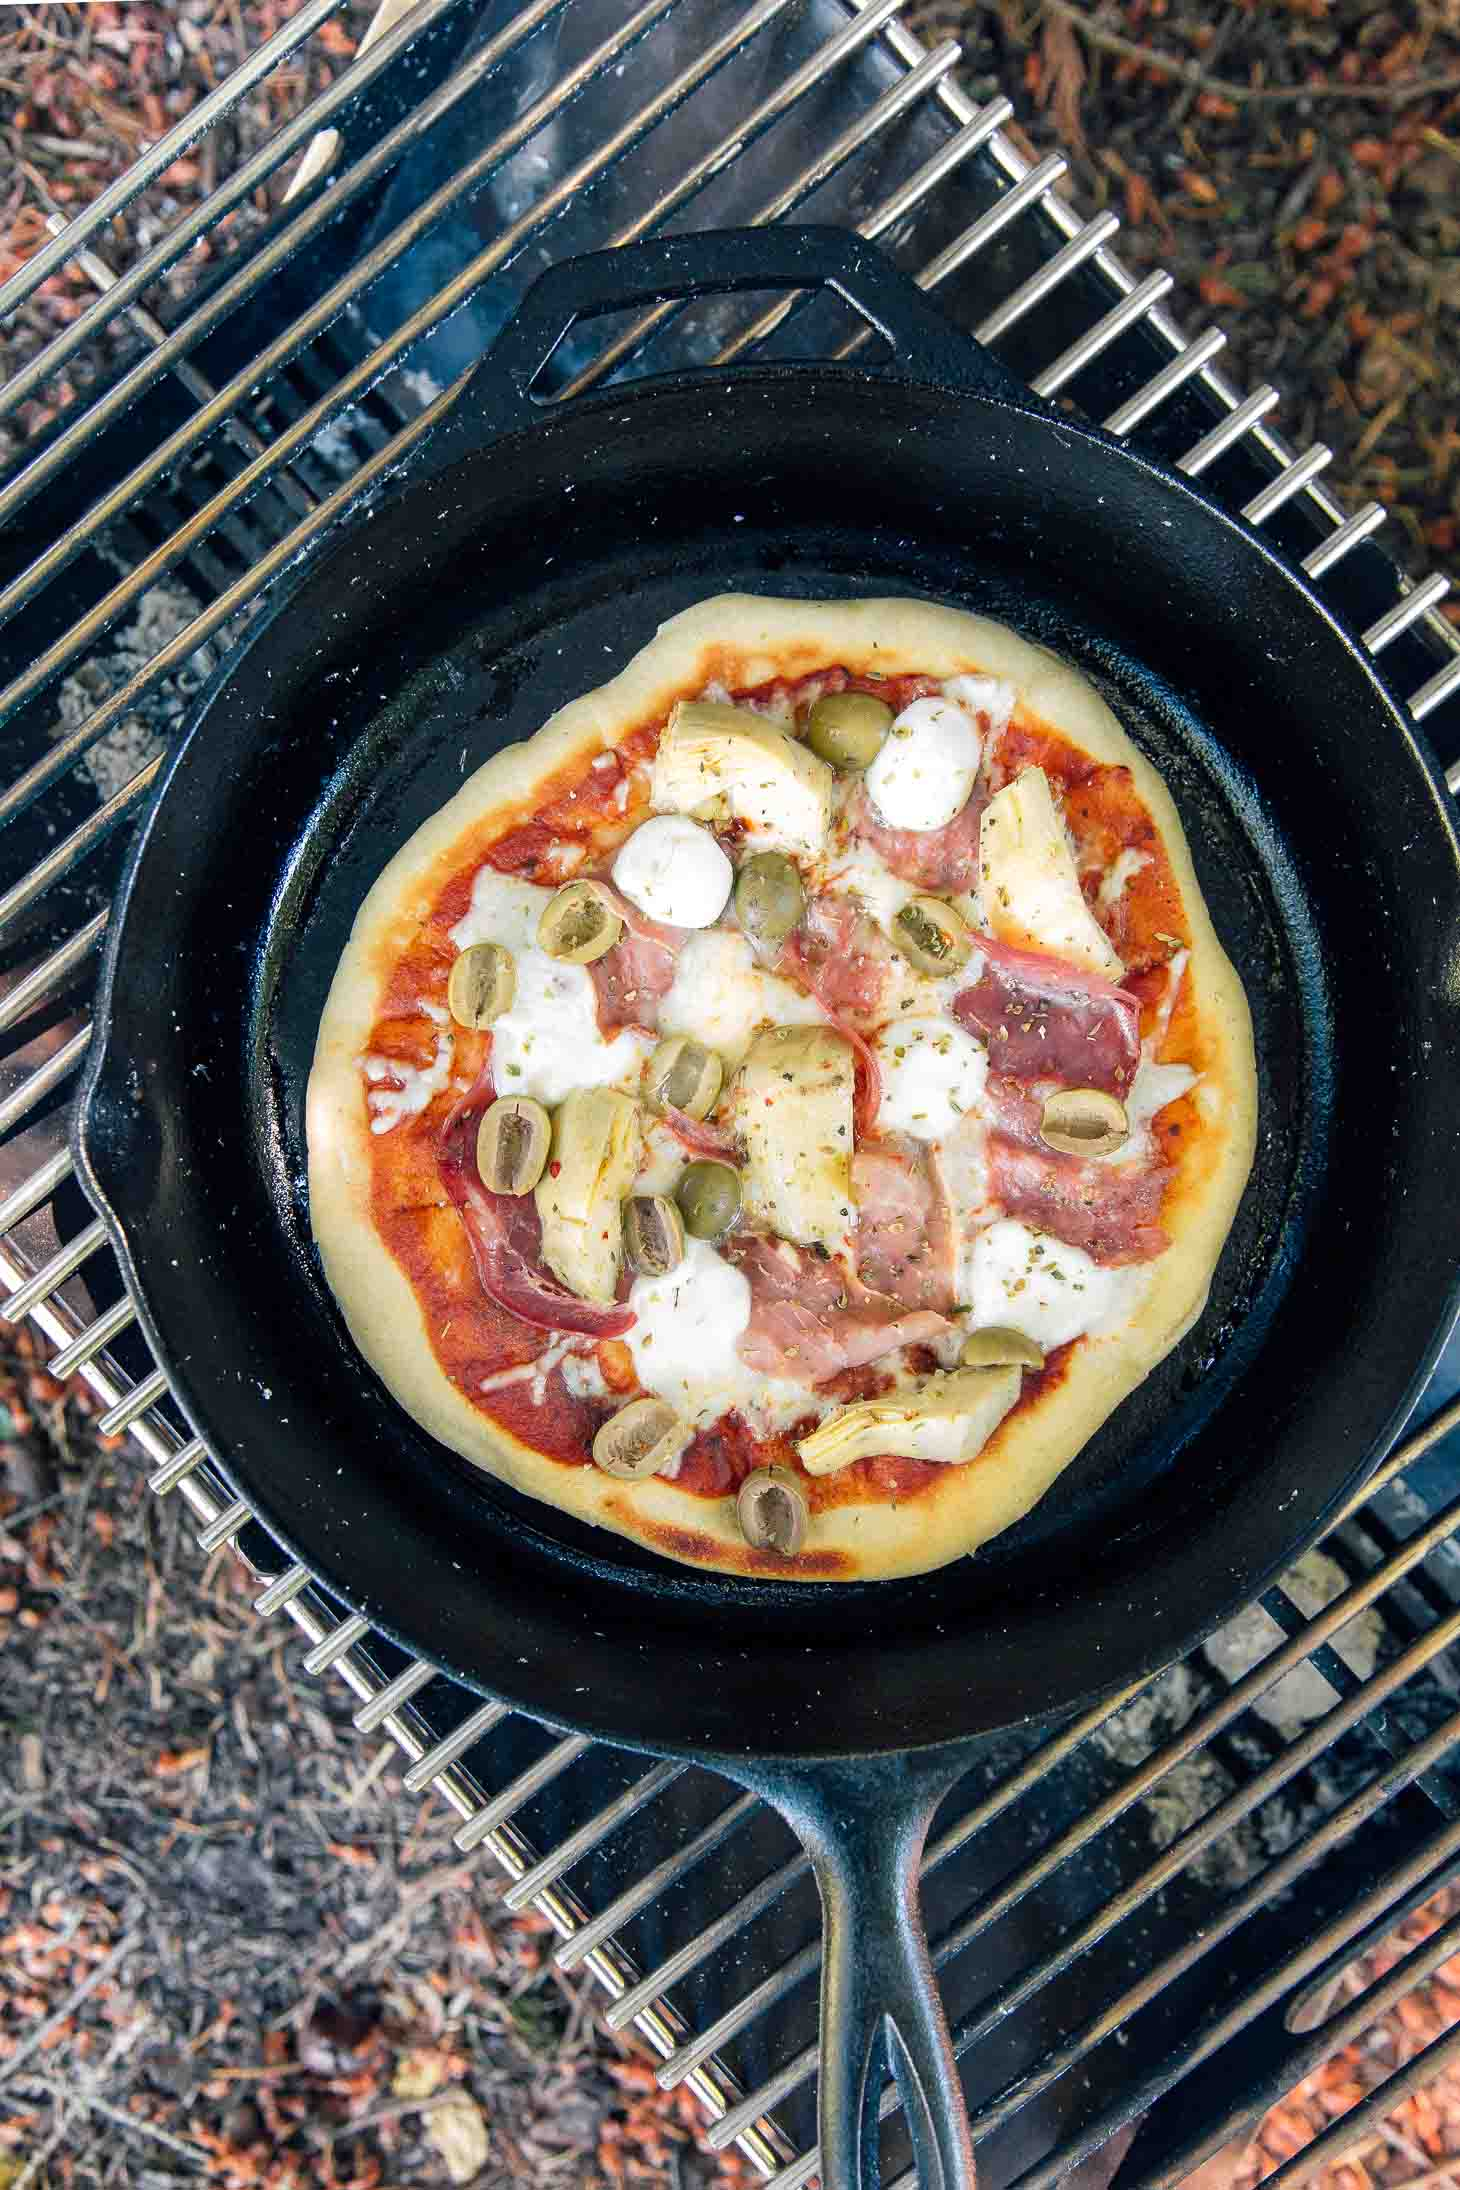 Antipasto pizza with proscuitto, artichoke hearts, olives, and mozzarella cheese in a cast iron skillet on a grill